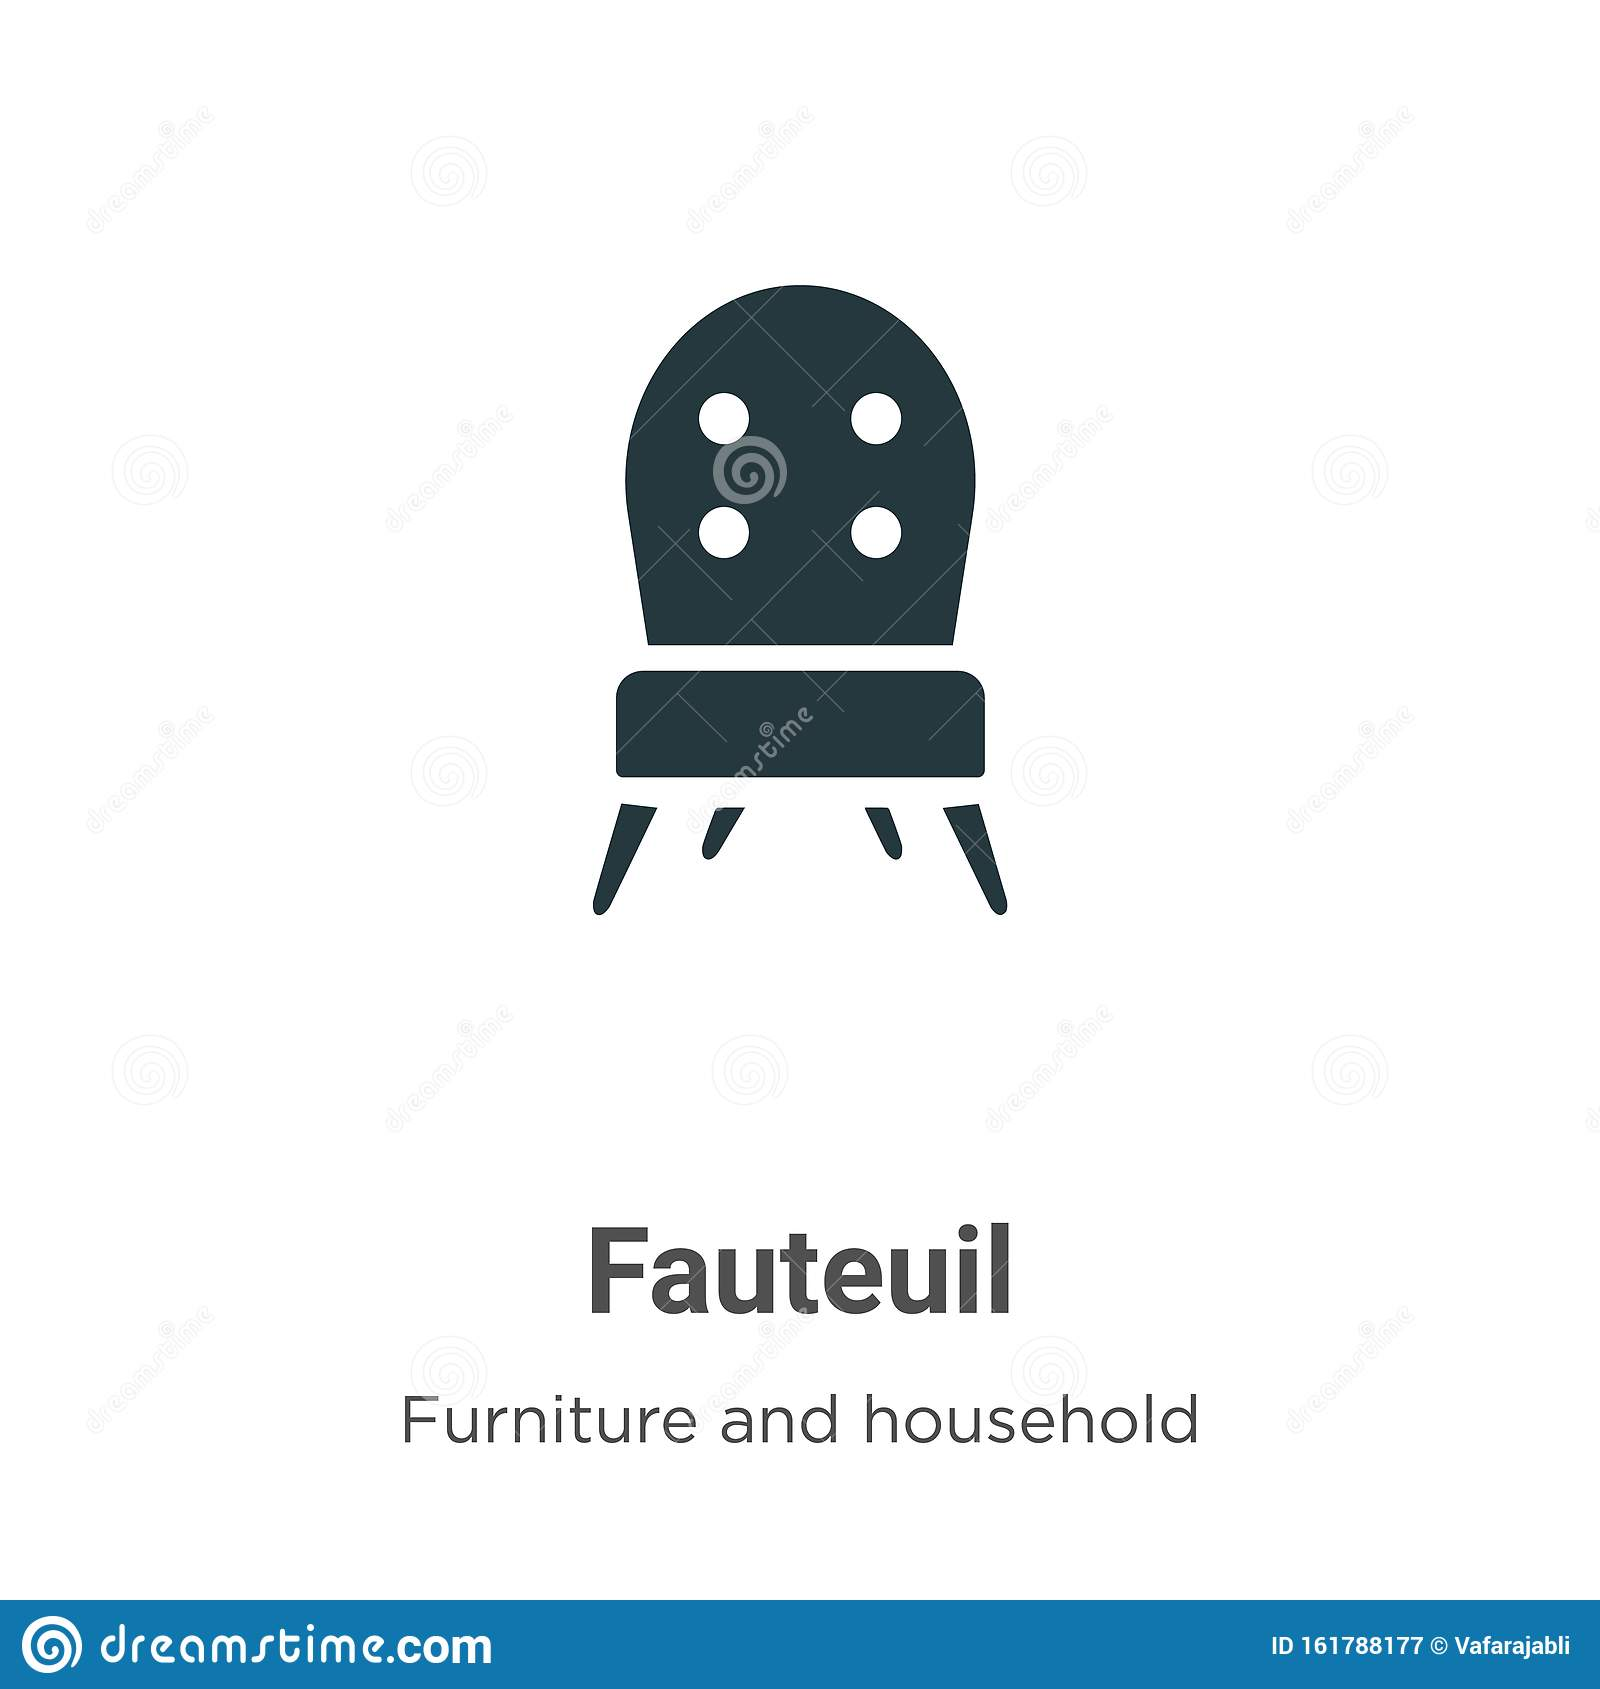 Modern Design Fauteuil.Fauteuil Vector Icon On White Background Flat Vector Fauteuil